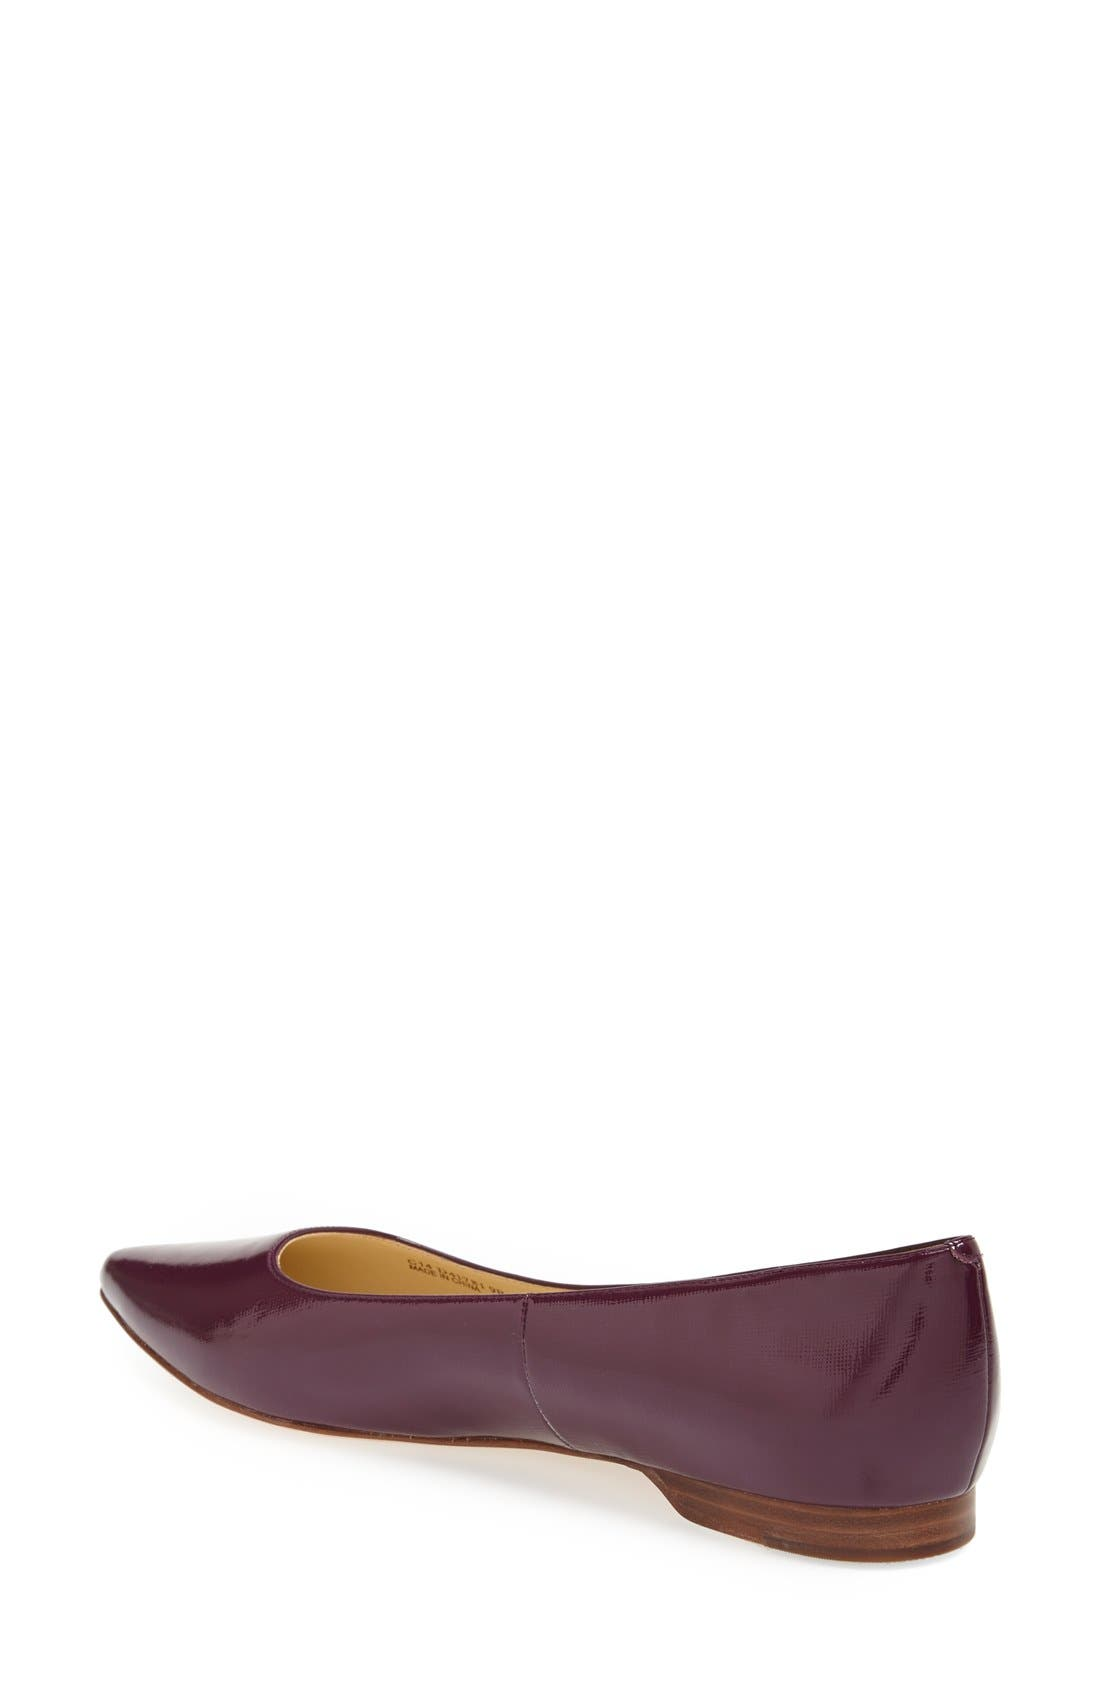 Alternate Image 2  - Cole Haan 'Magnolia' Skimmer Flat (Women)